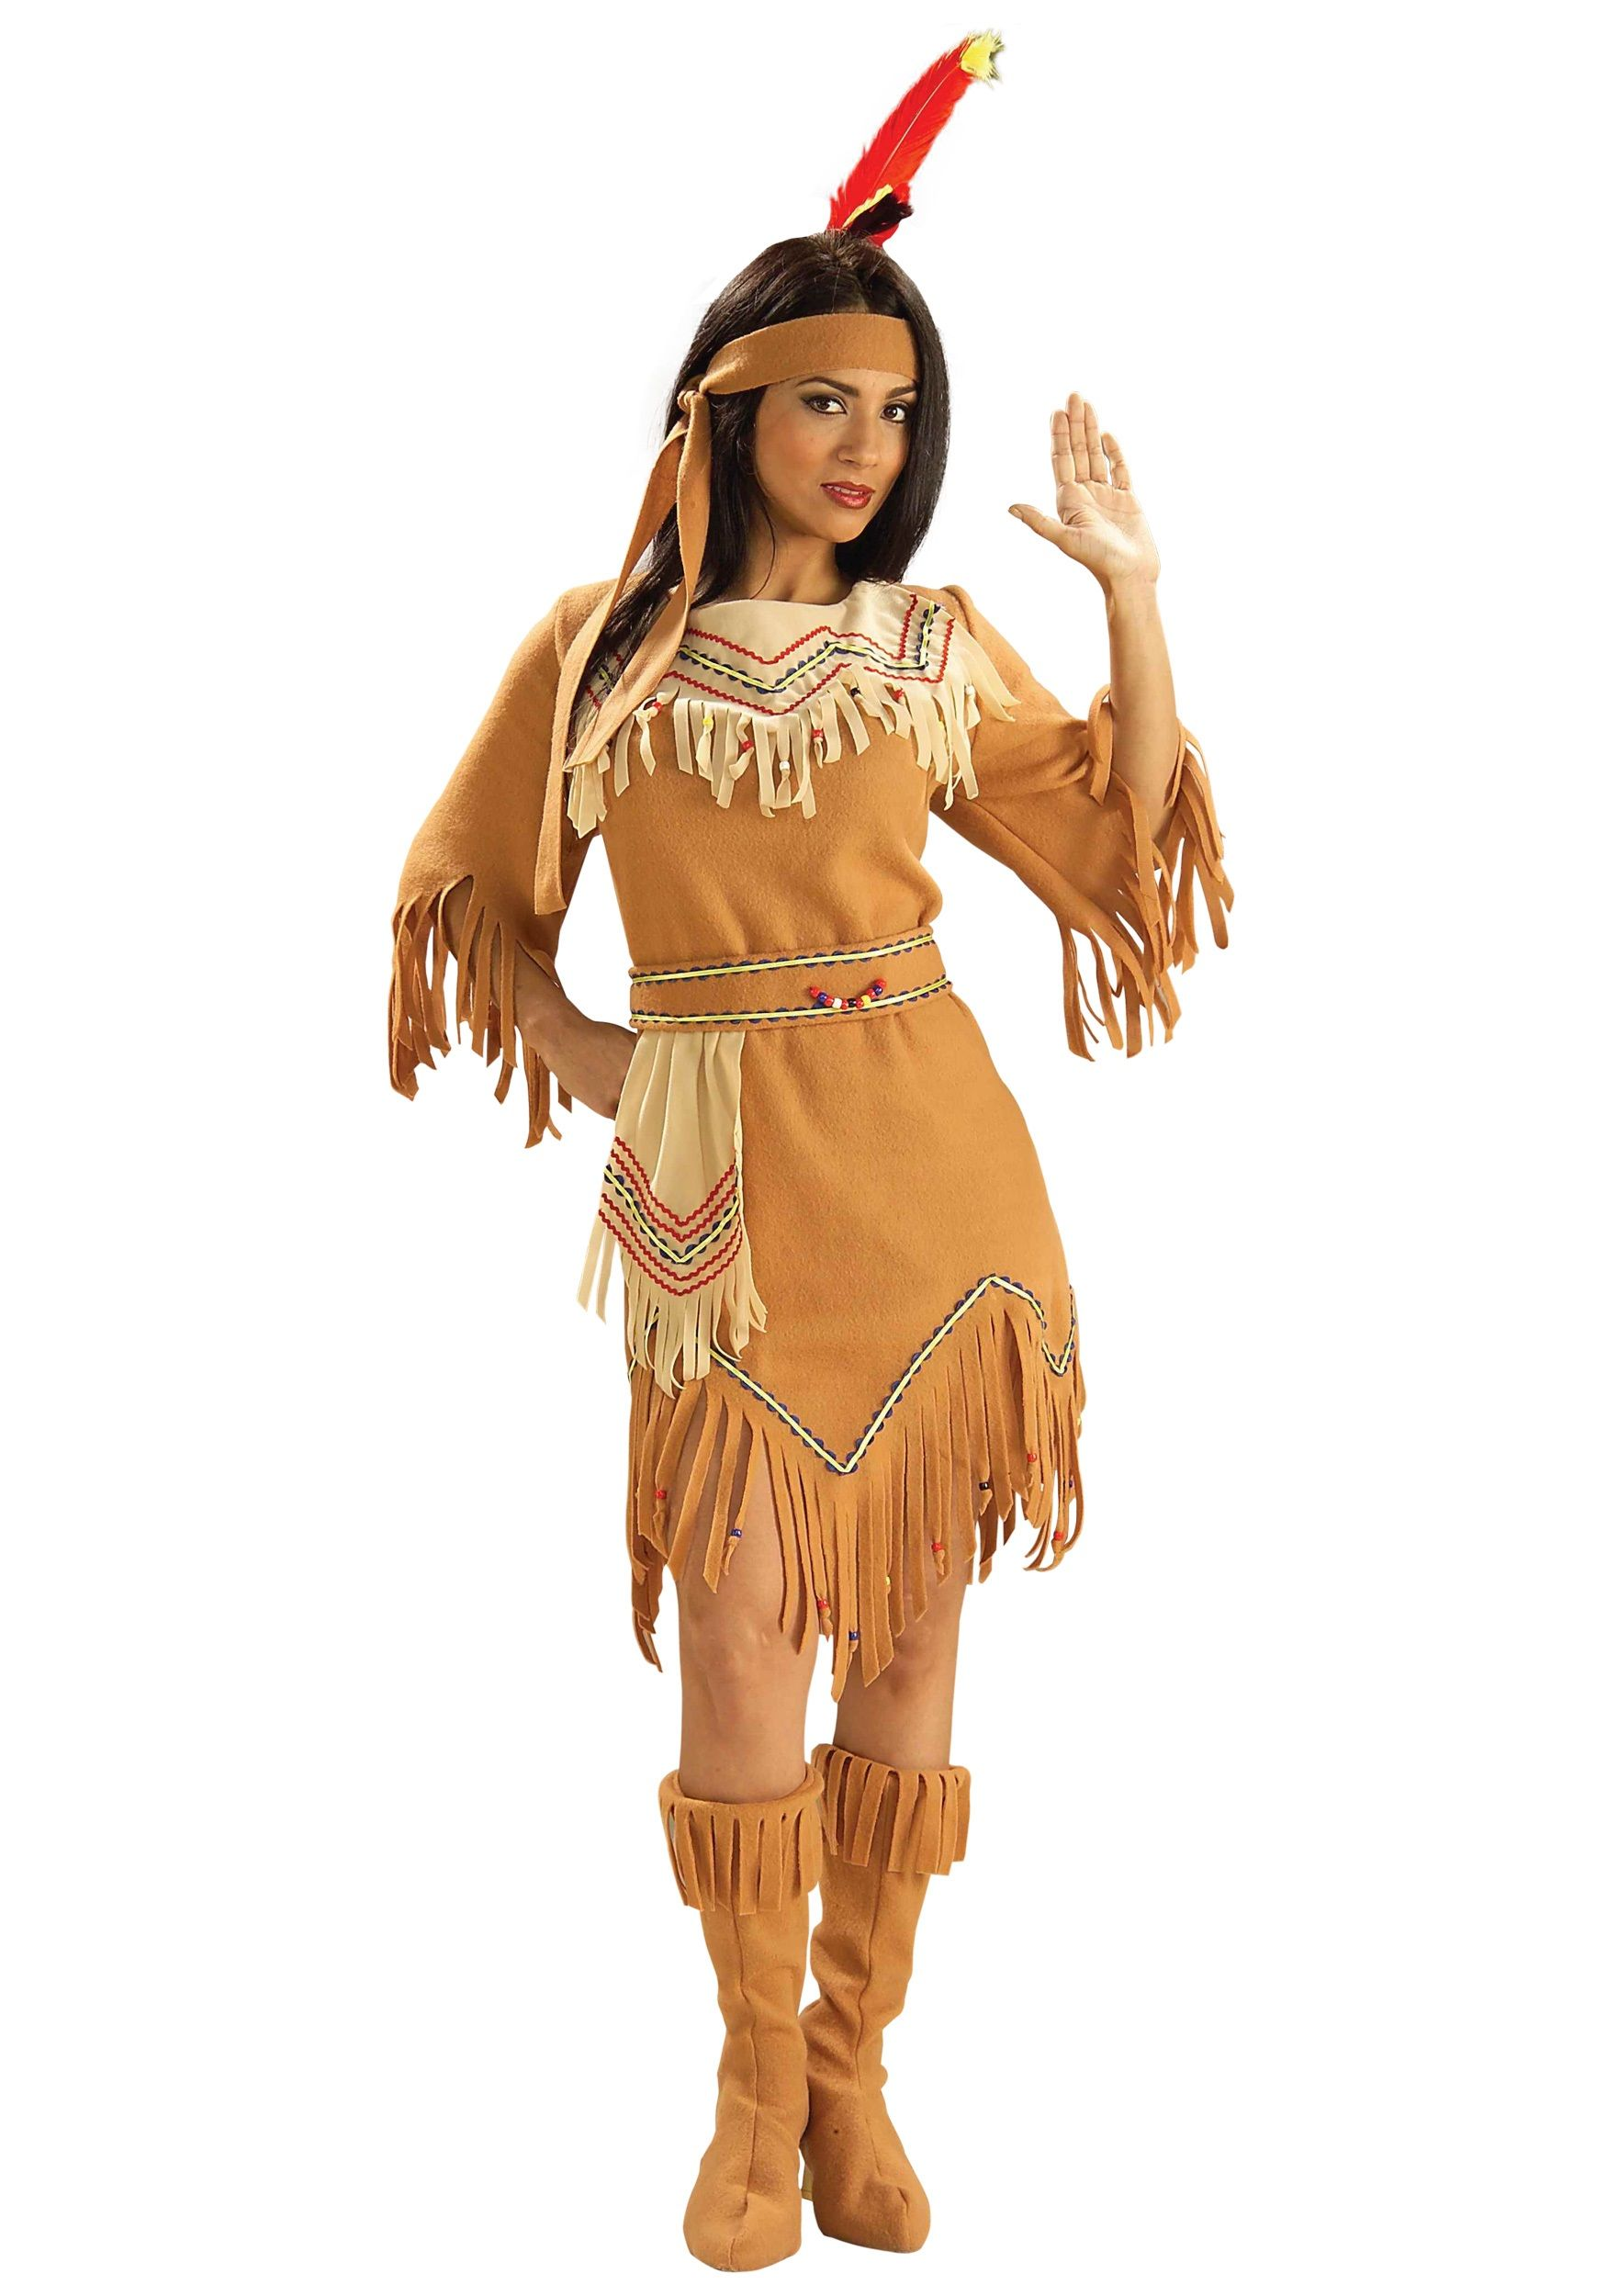 This Indian costumes traditional look will impress all of your Halloween guests. The costumes Native American look is fun for Halloween or theme parties!